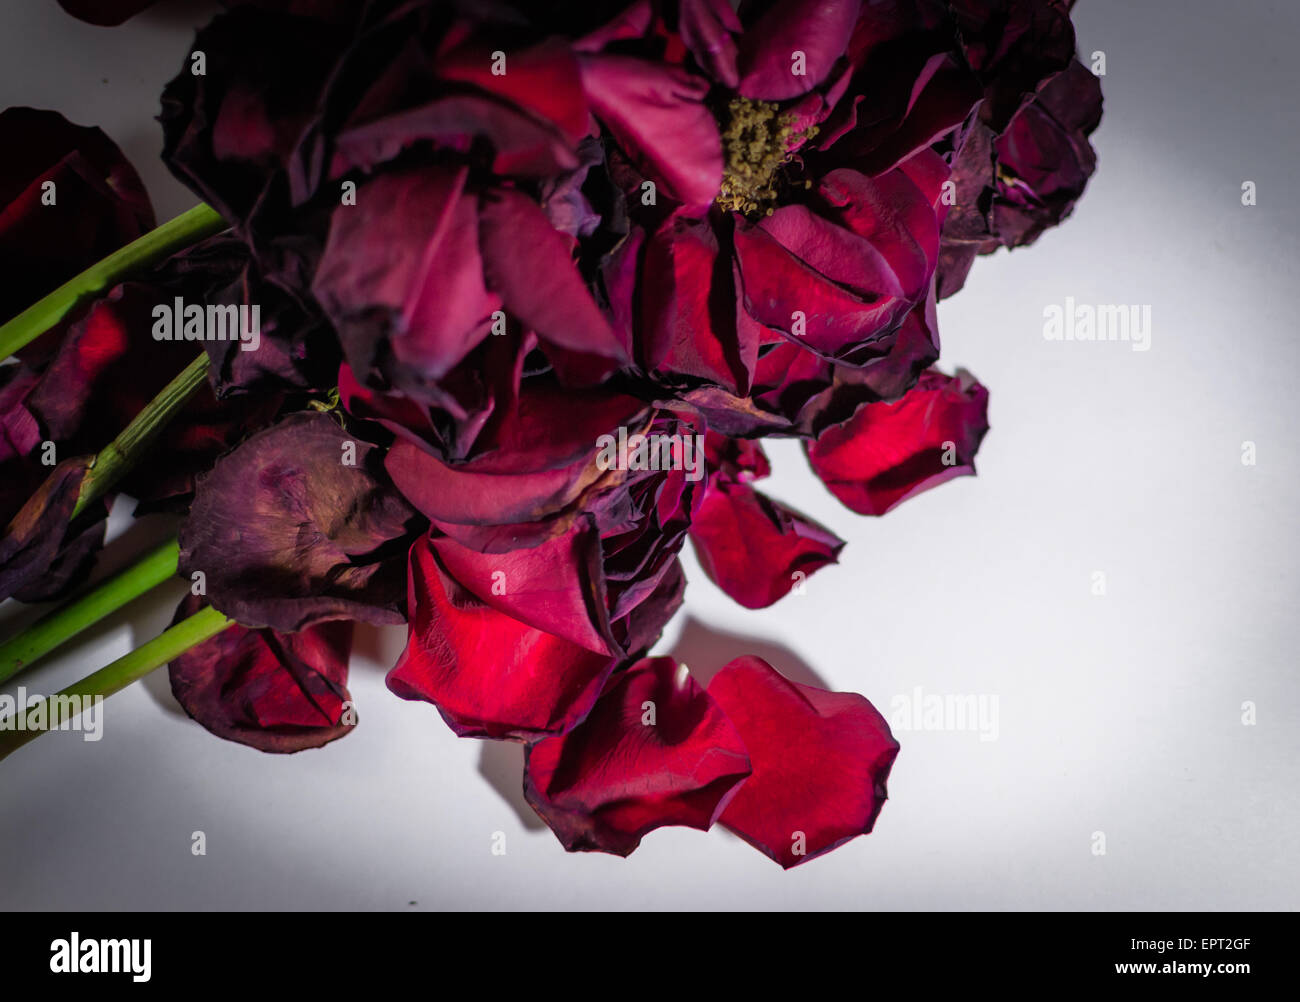 Dying Rose Stock Photos & Dying Rose Stock Images - Alamy